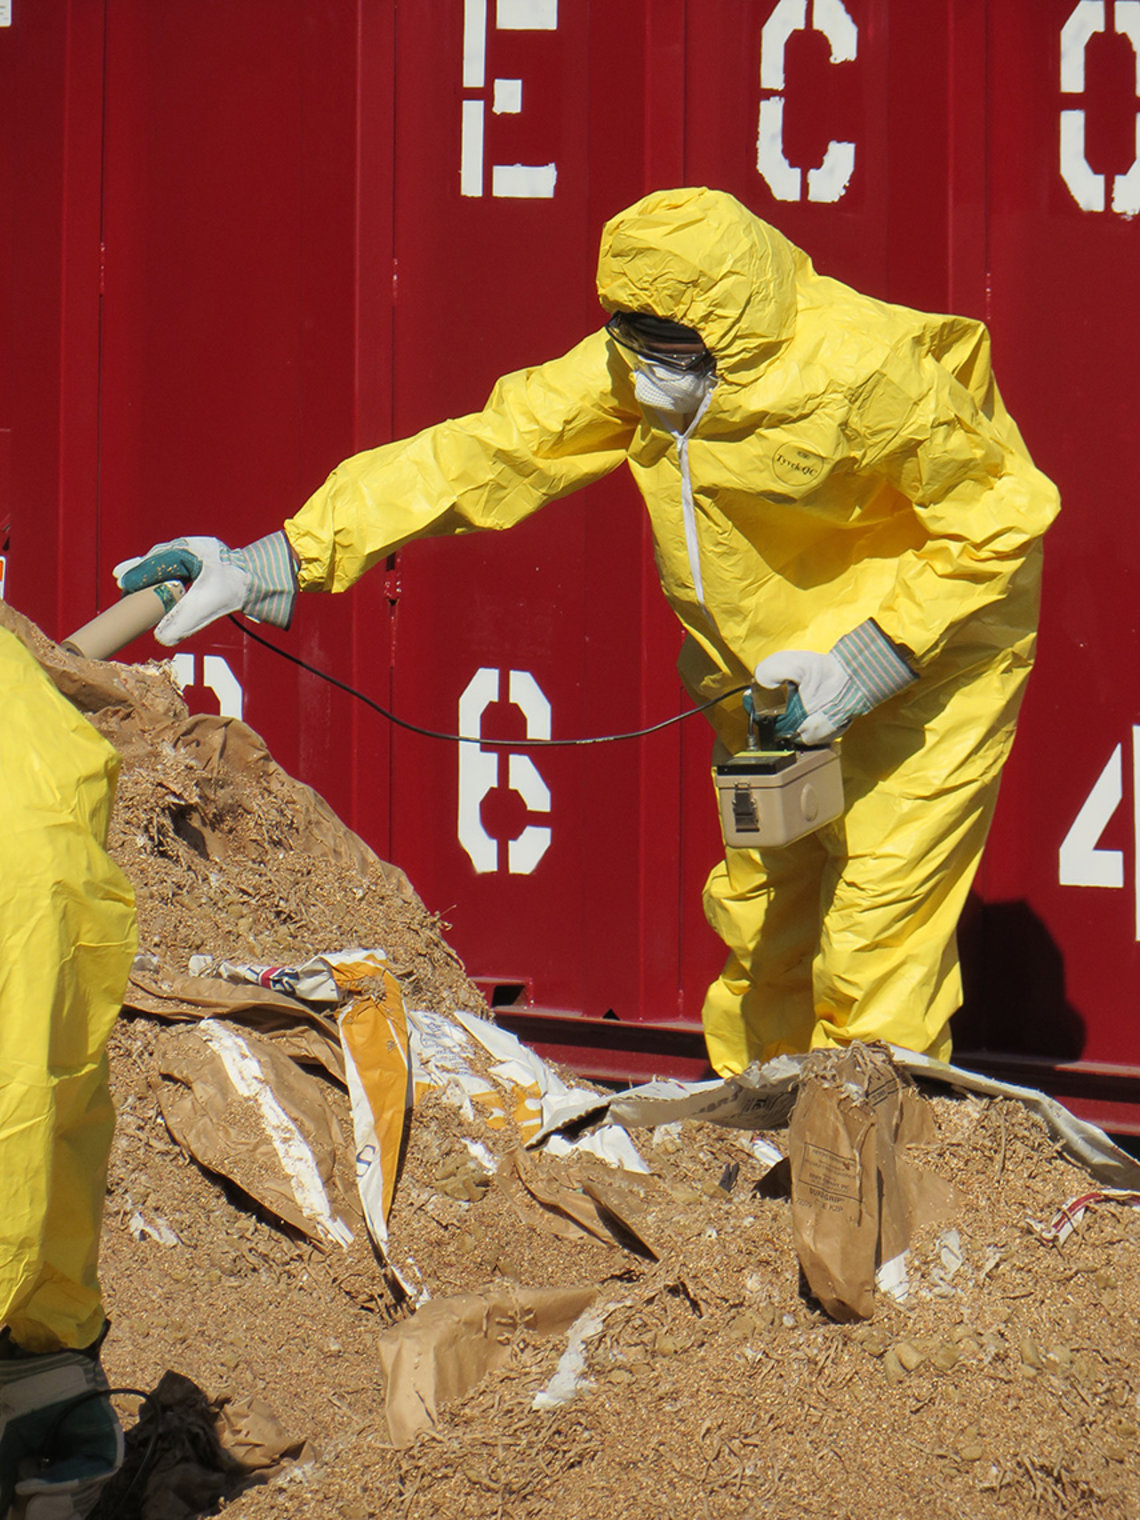 Person in hazmat suit, mask and gloves working on pile of dirt, landfill